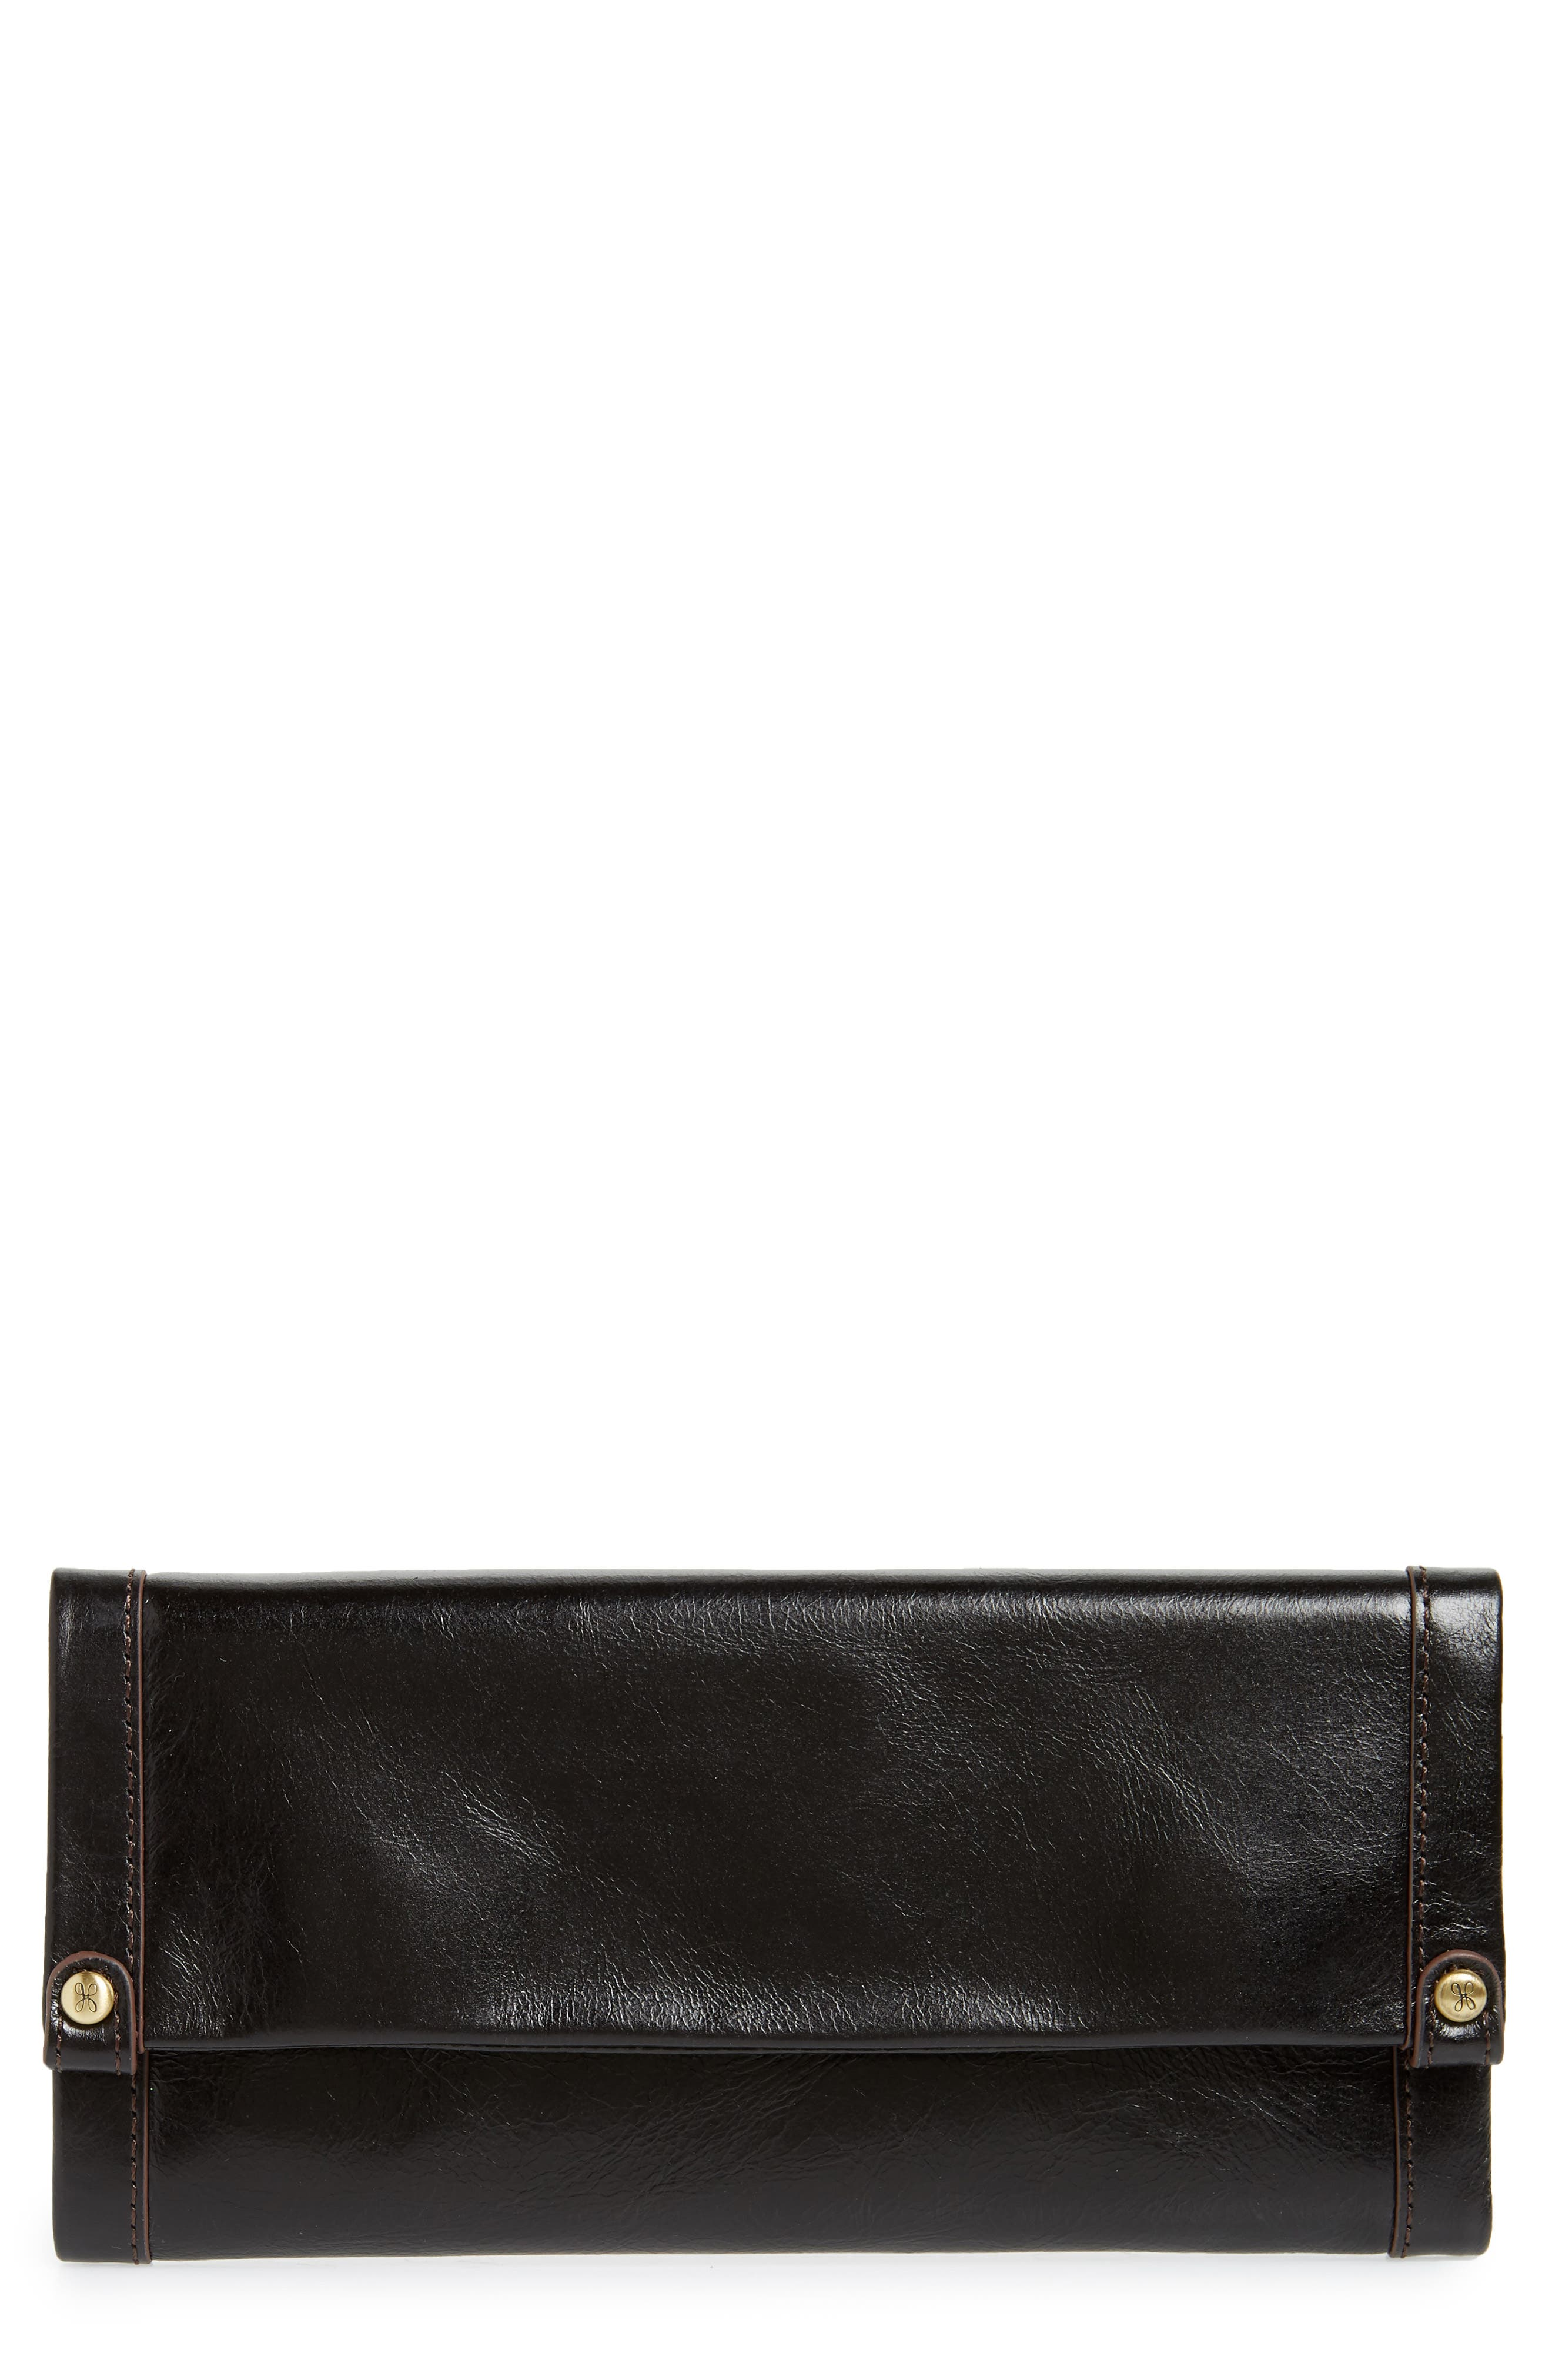 Fable Continental Wallet,                         Main,                         color, 001